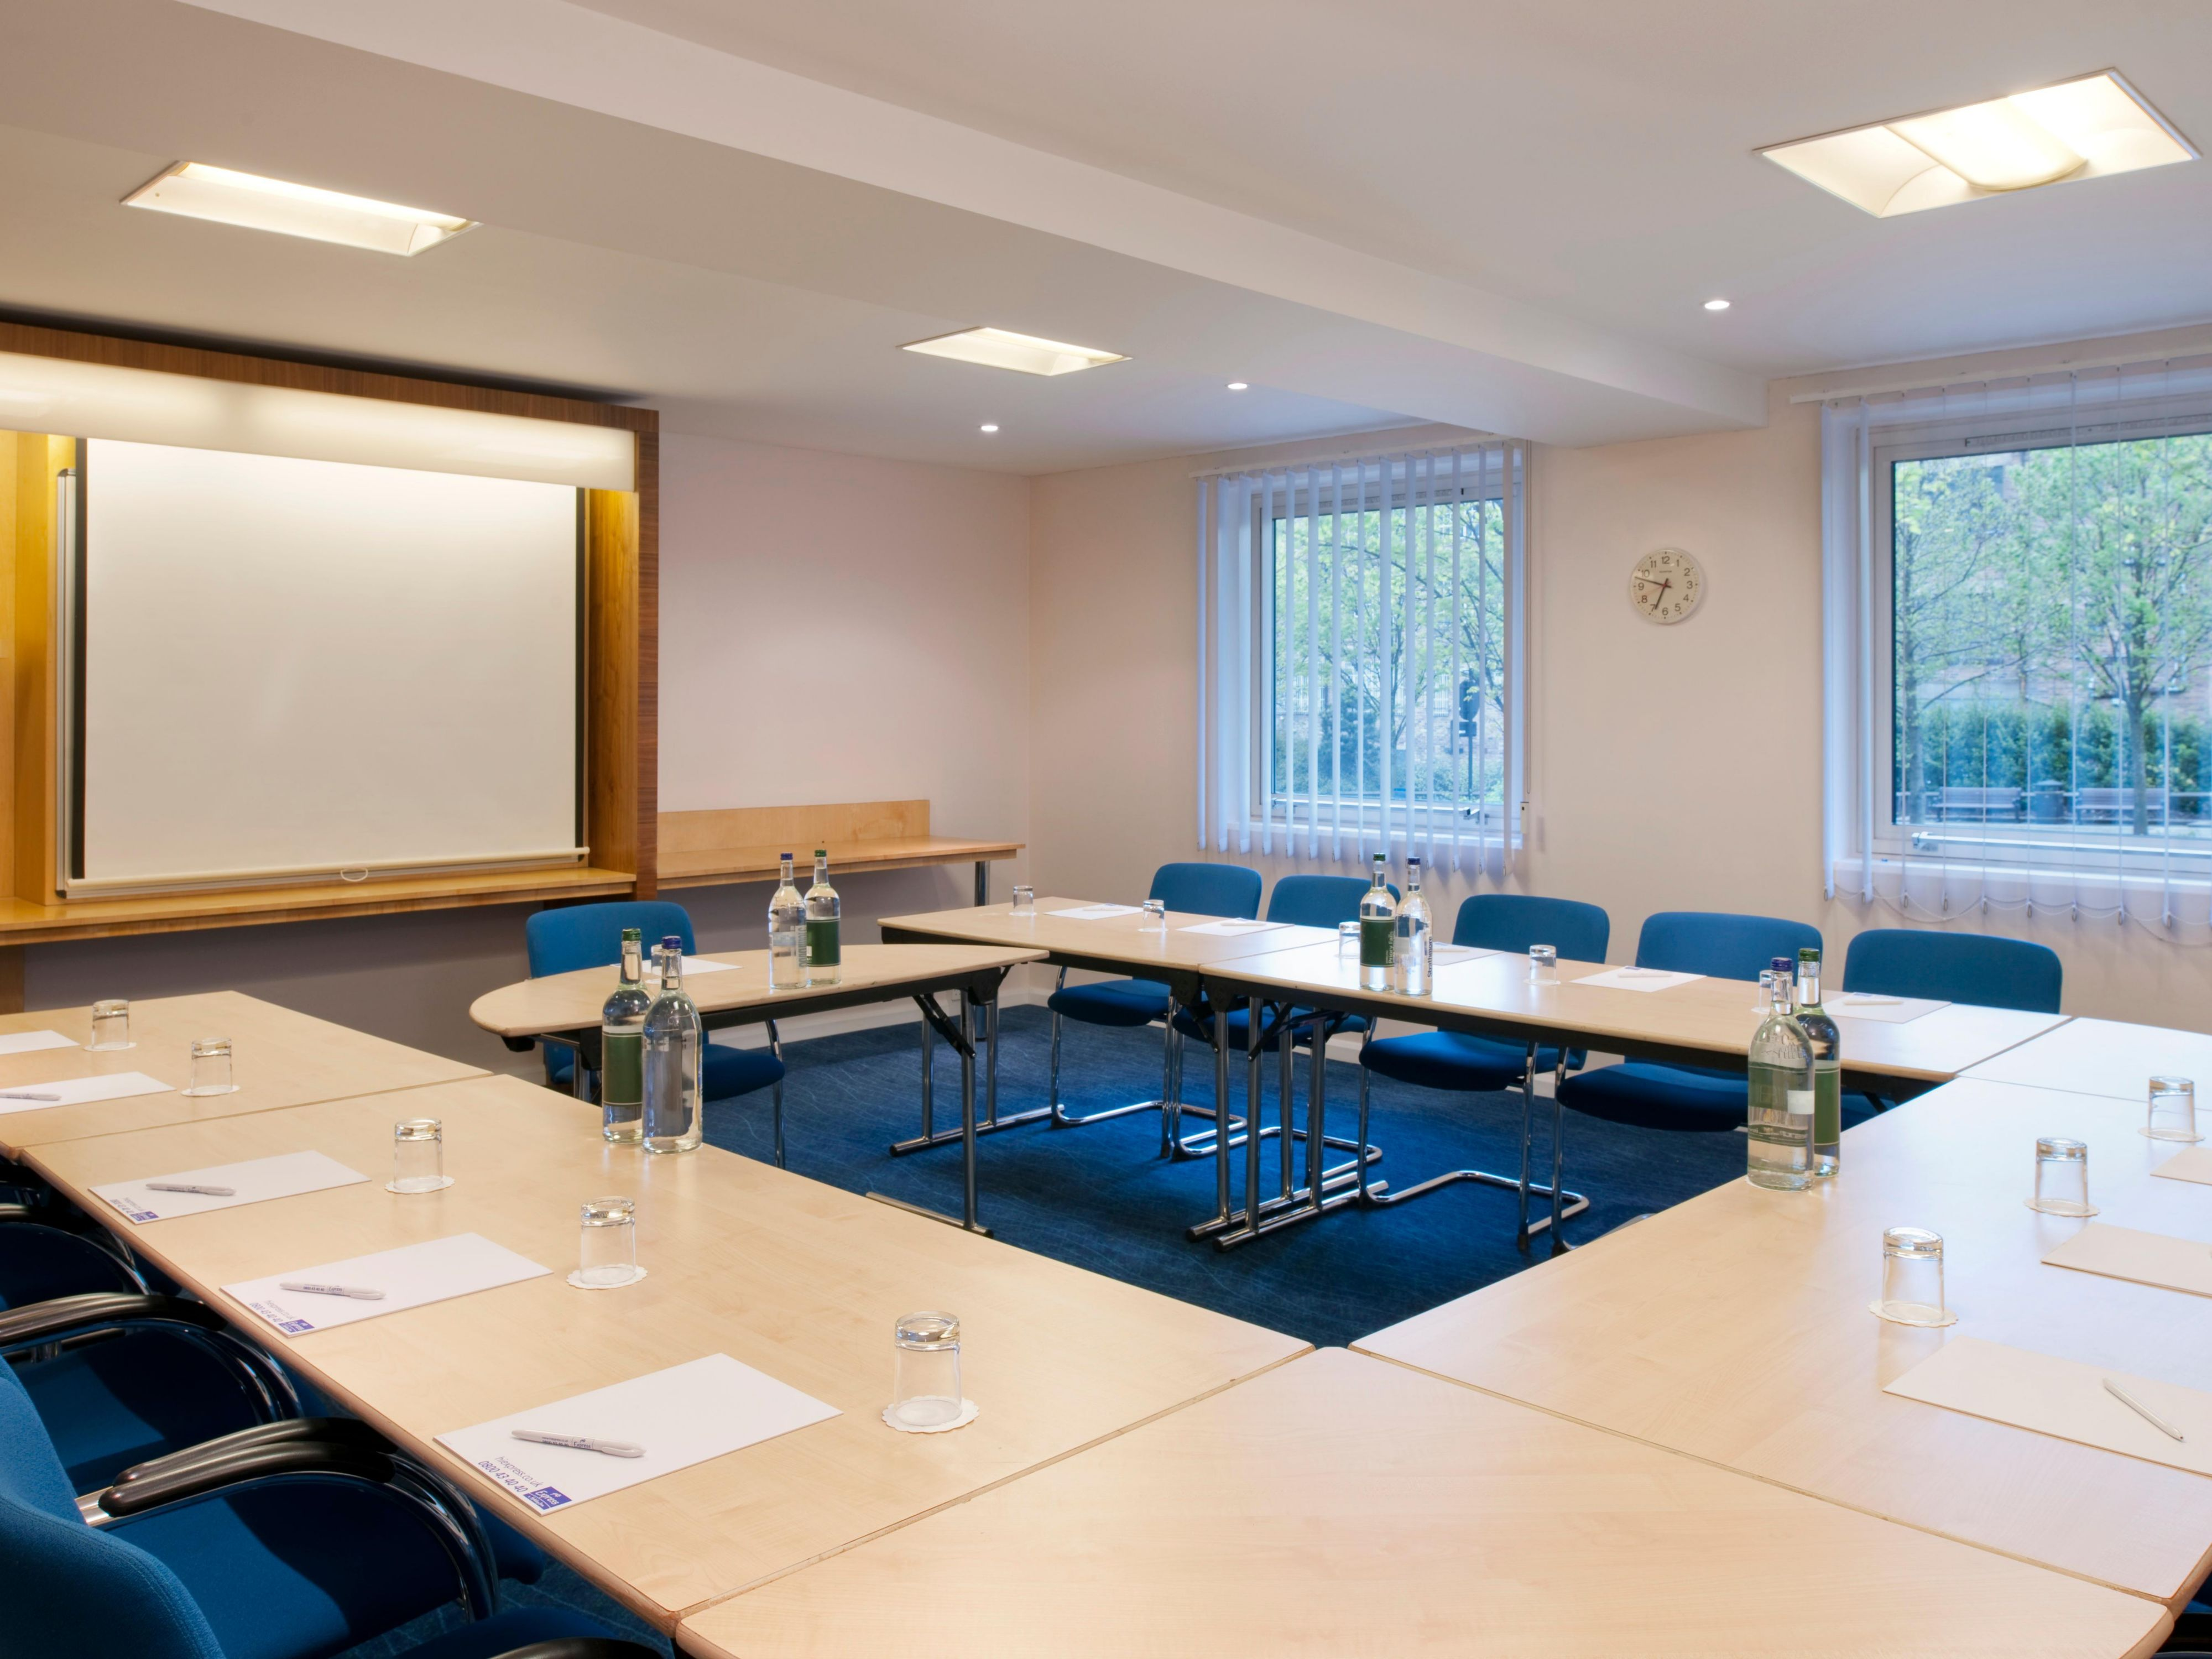 Meeting Room facilities at our Newcastle city centre hotel